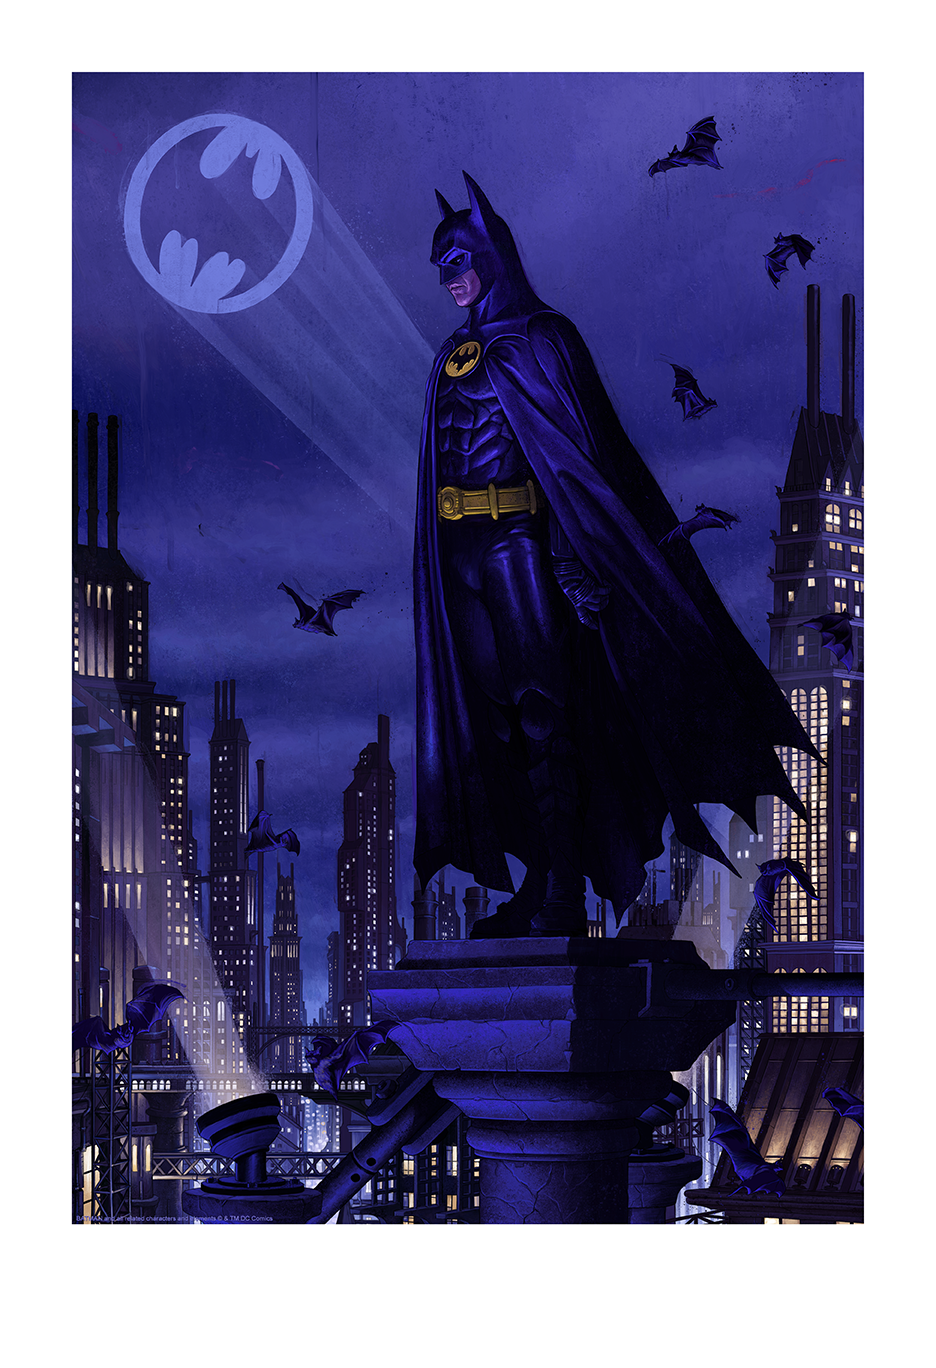 "Rory Kurtz ""Ikonescape: Batman"" giclee with embossment, 13 x 19 inches, numbered edition of 350, available for $75"